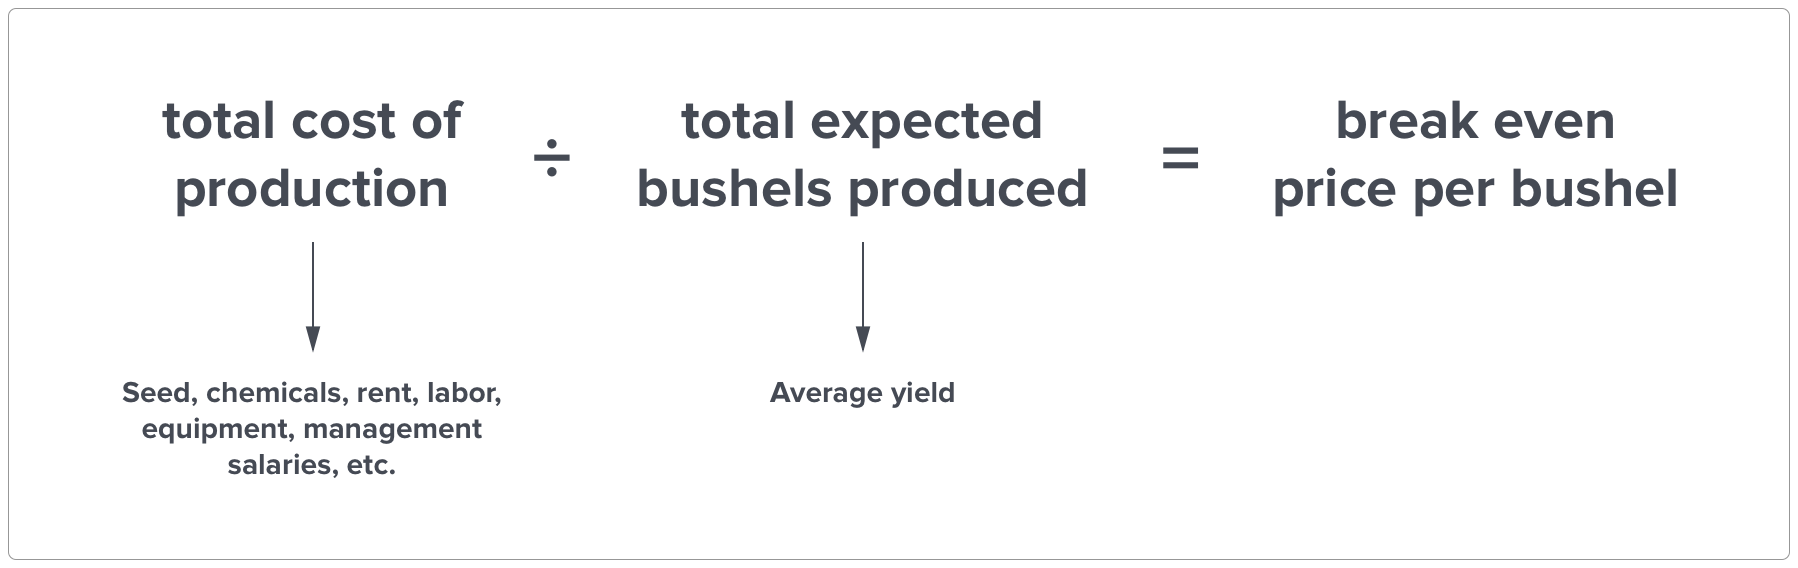 your farm's breakeven equation: cost of production divided by total expected bushels